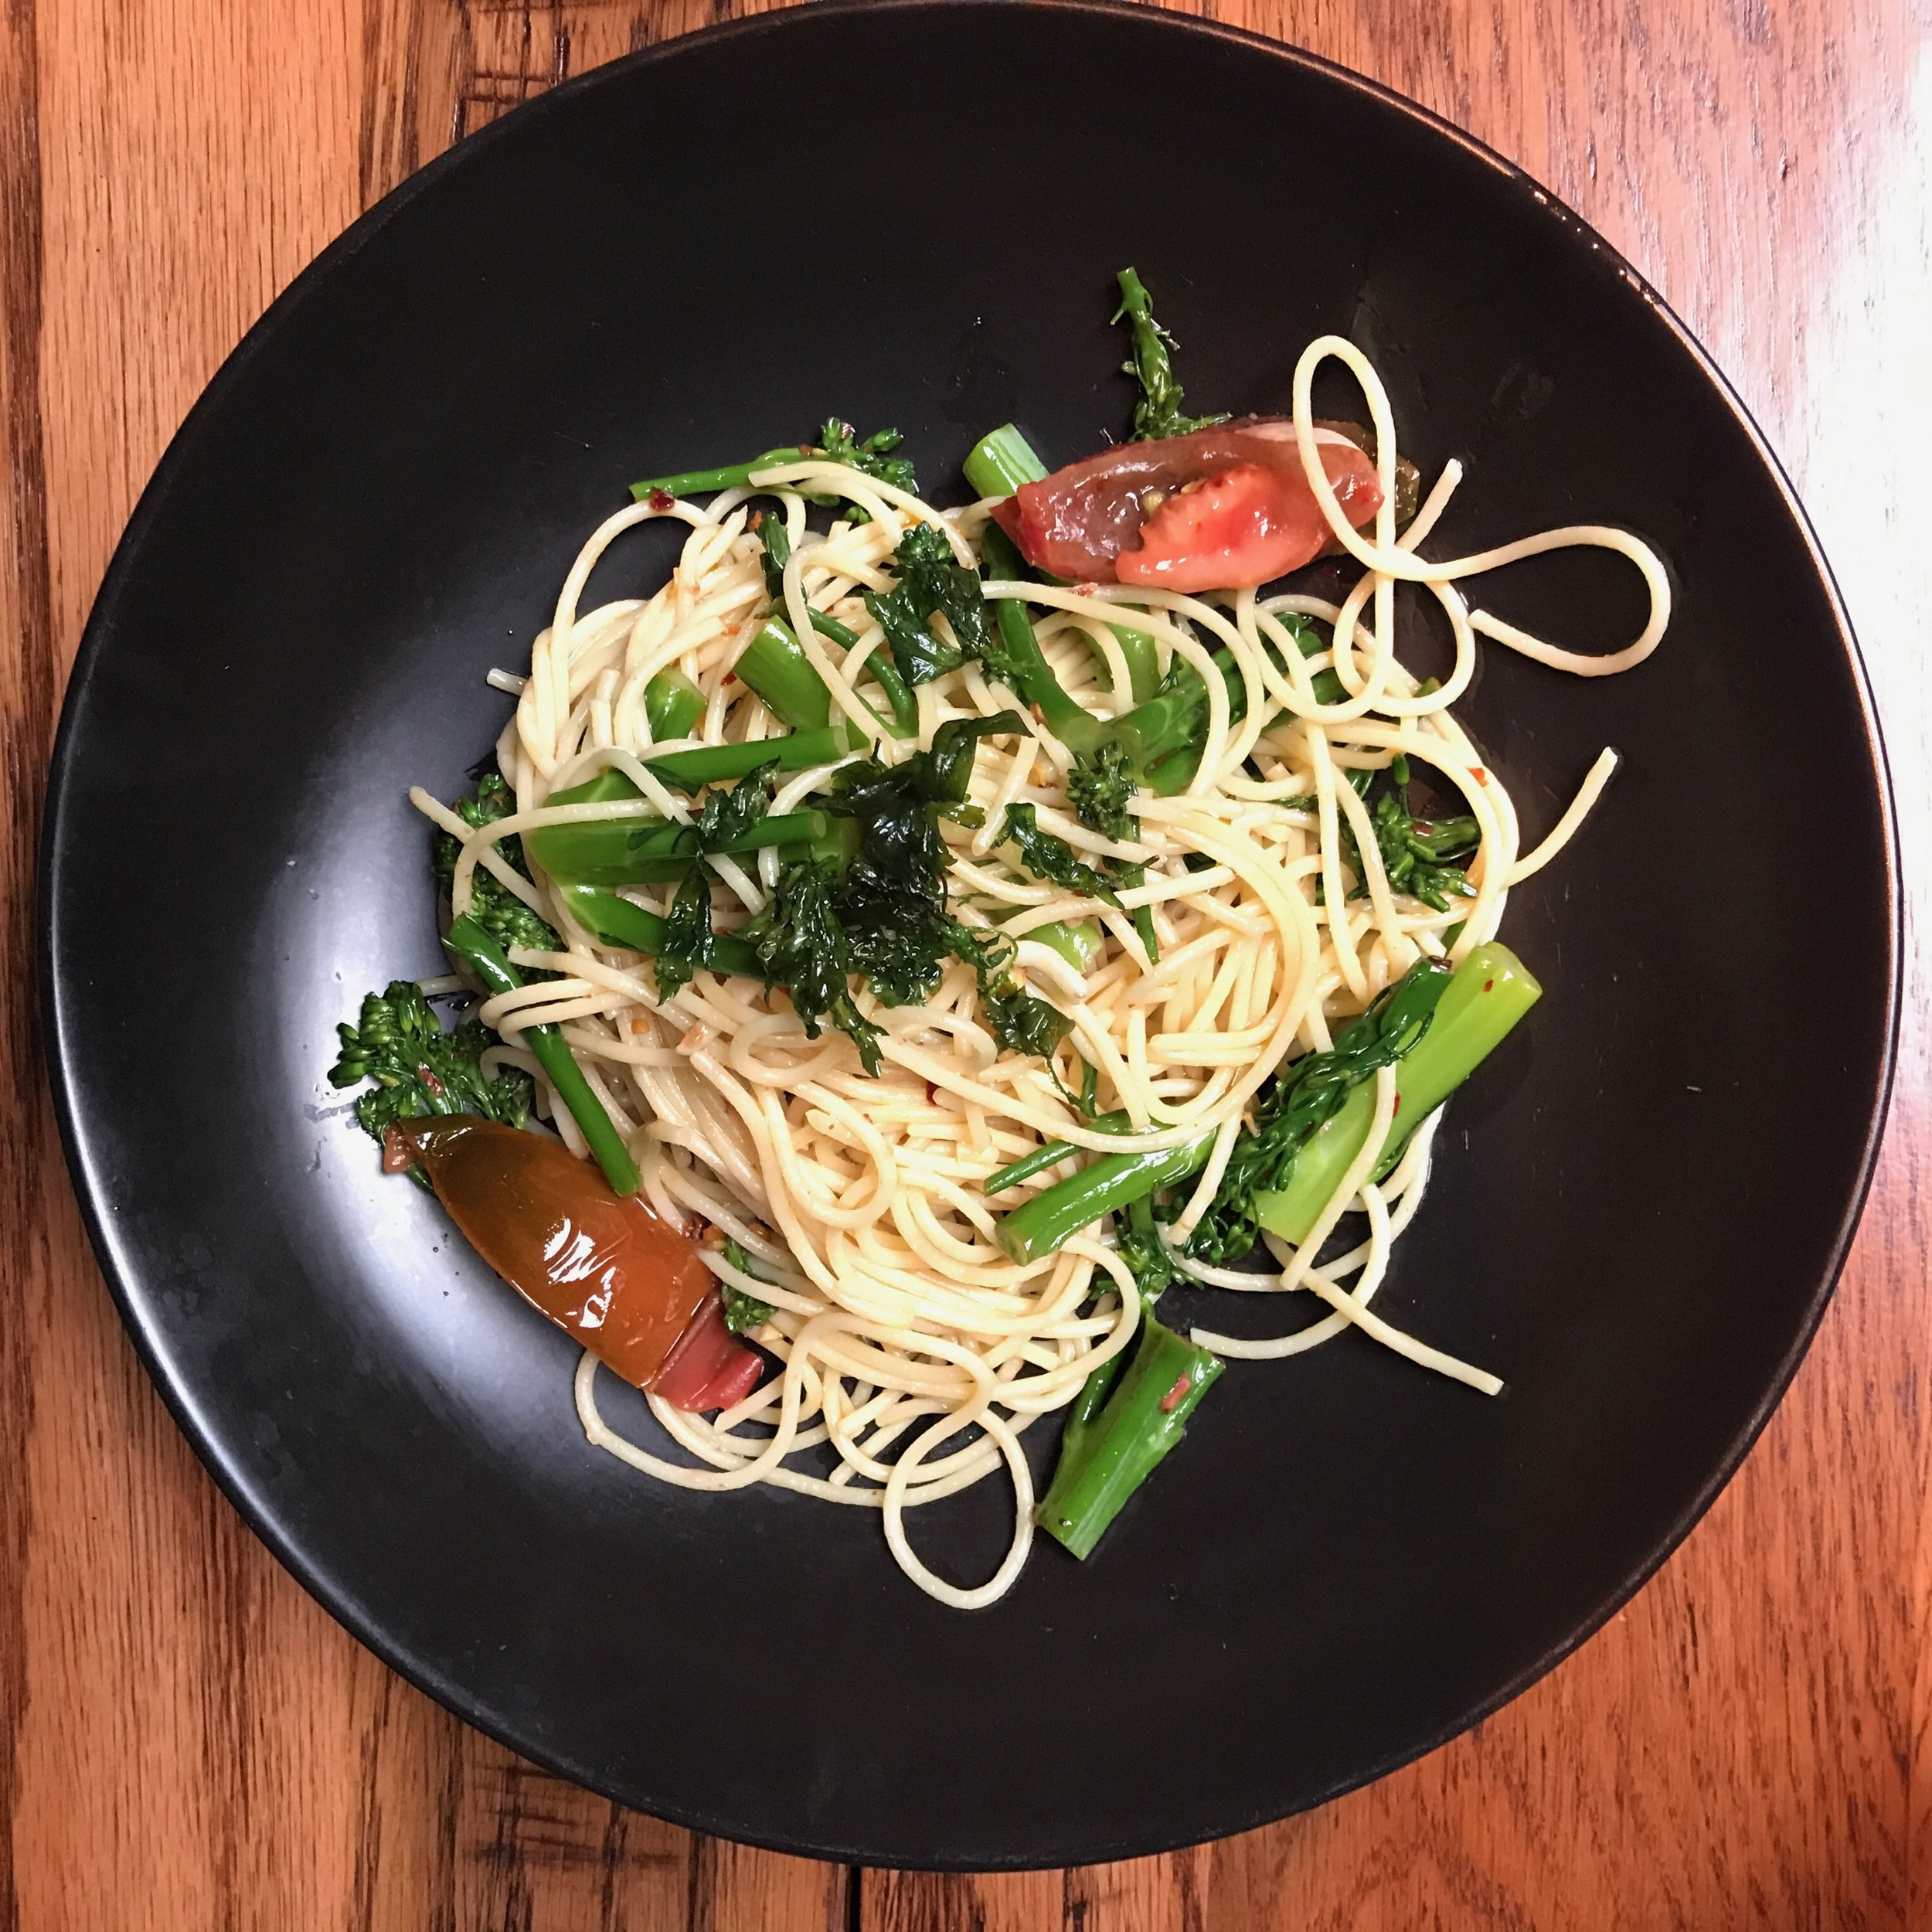 VEGGIE SPAGHETTI FROM BEAUTY AND ESSEX